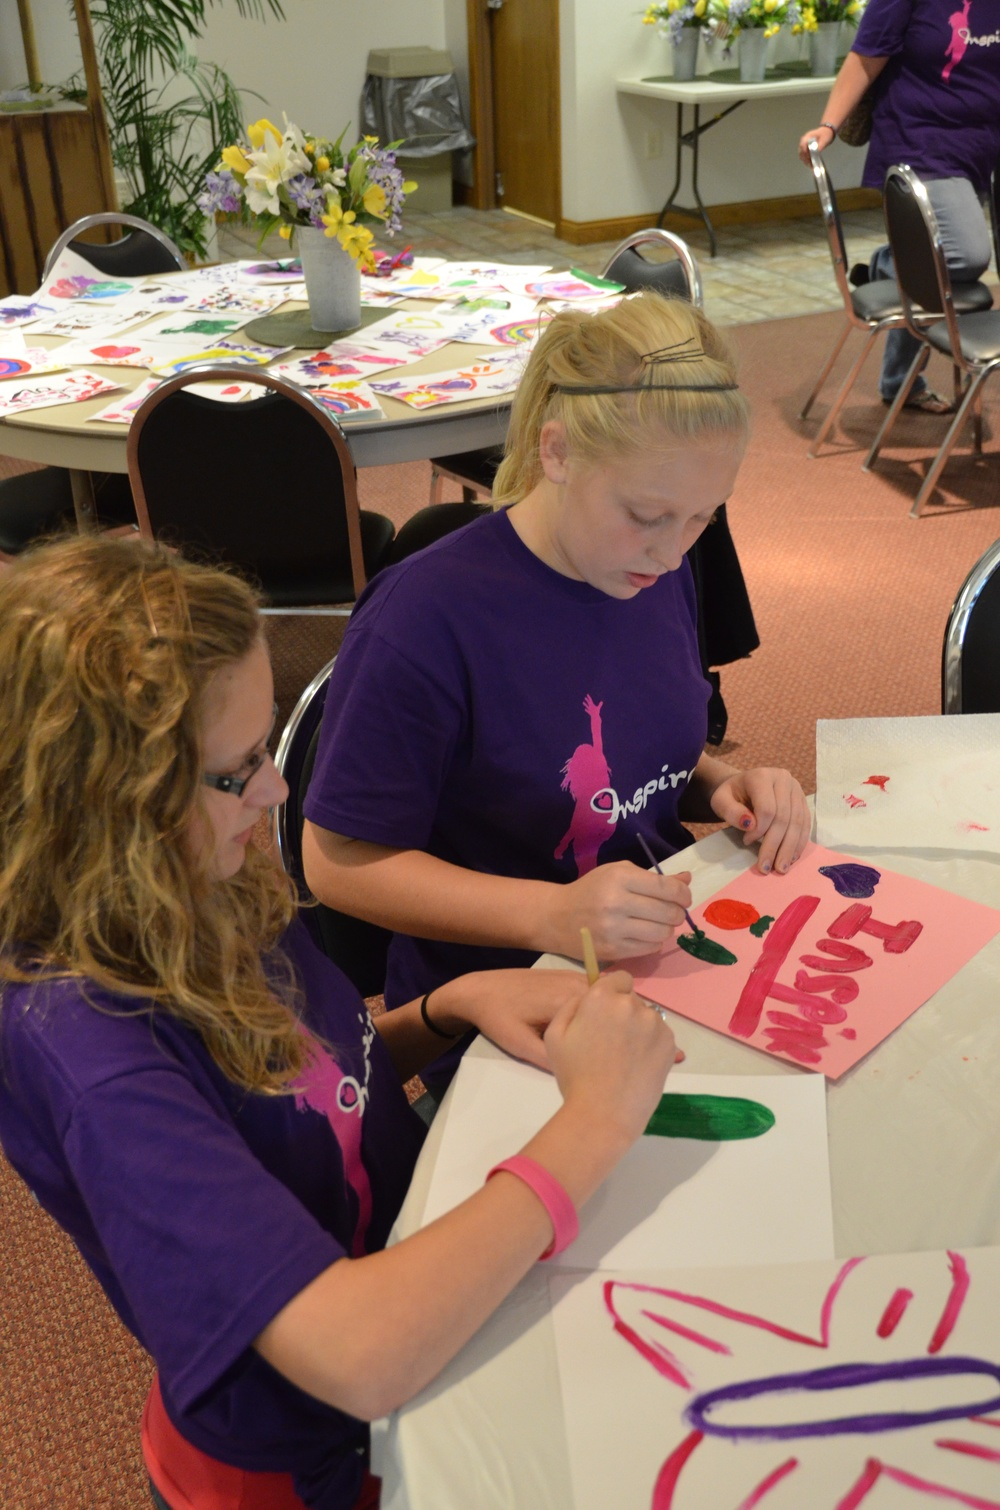 KIds ARt Church 9 12 2011   95304.jpg